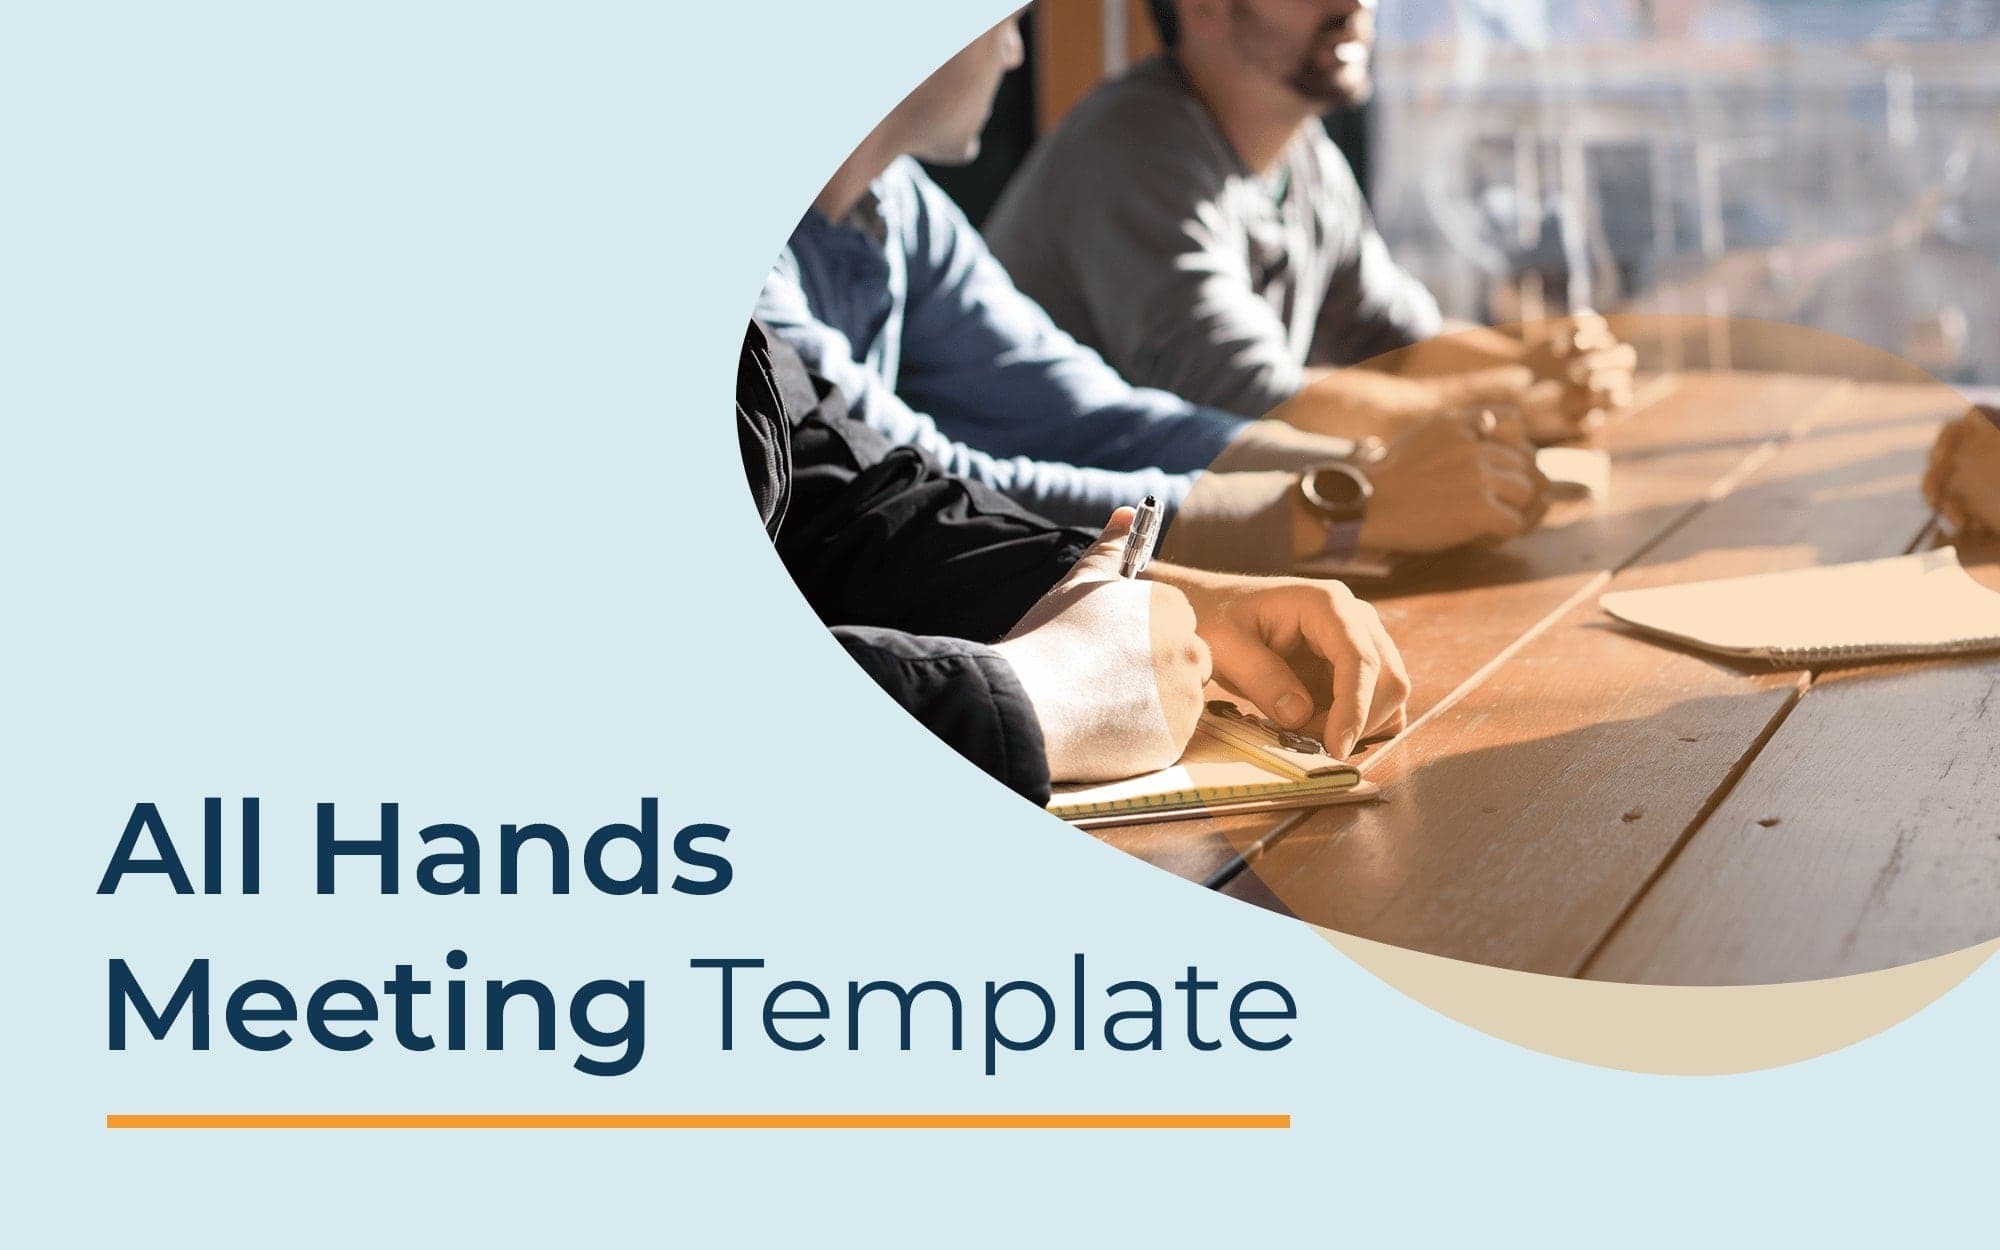 All hands meeting template